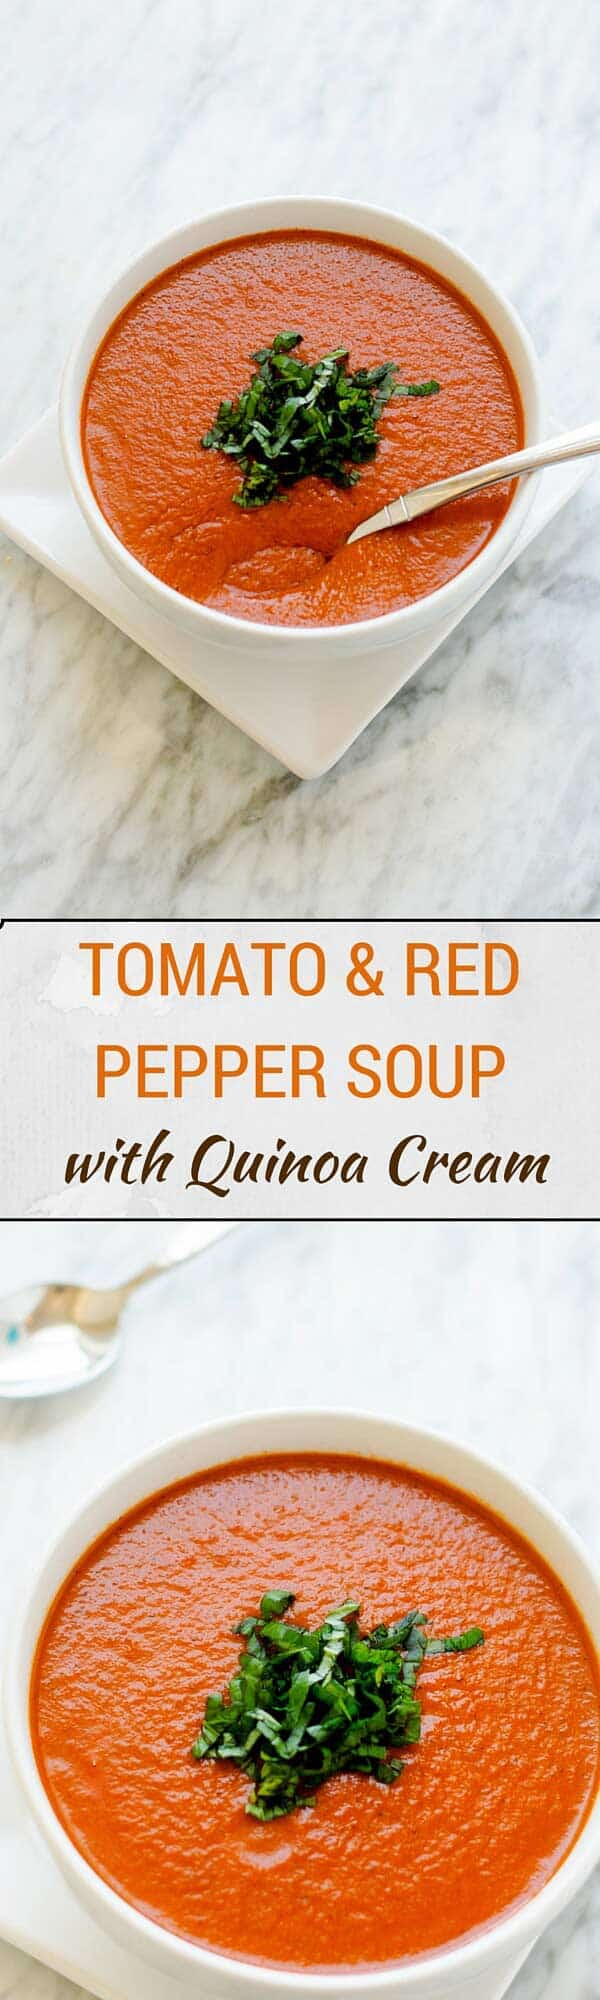 This Tomato & Red Pepper Soup is a delicious and nutritious alternative when you need a comfort food fix.  So creamy and flavorful! #soup #healthy #easyrecipe